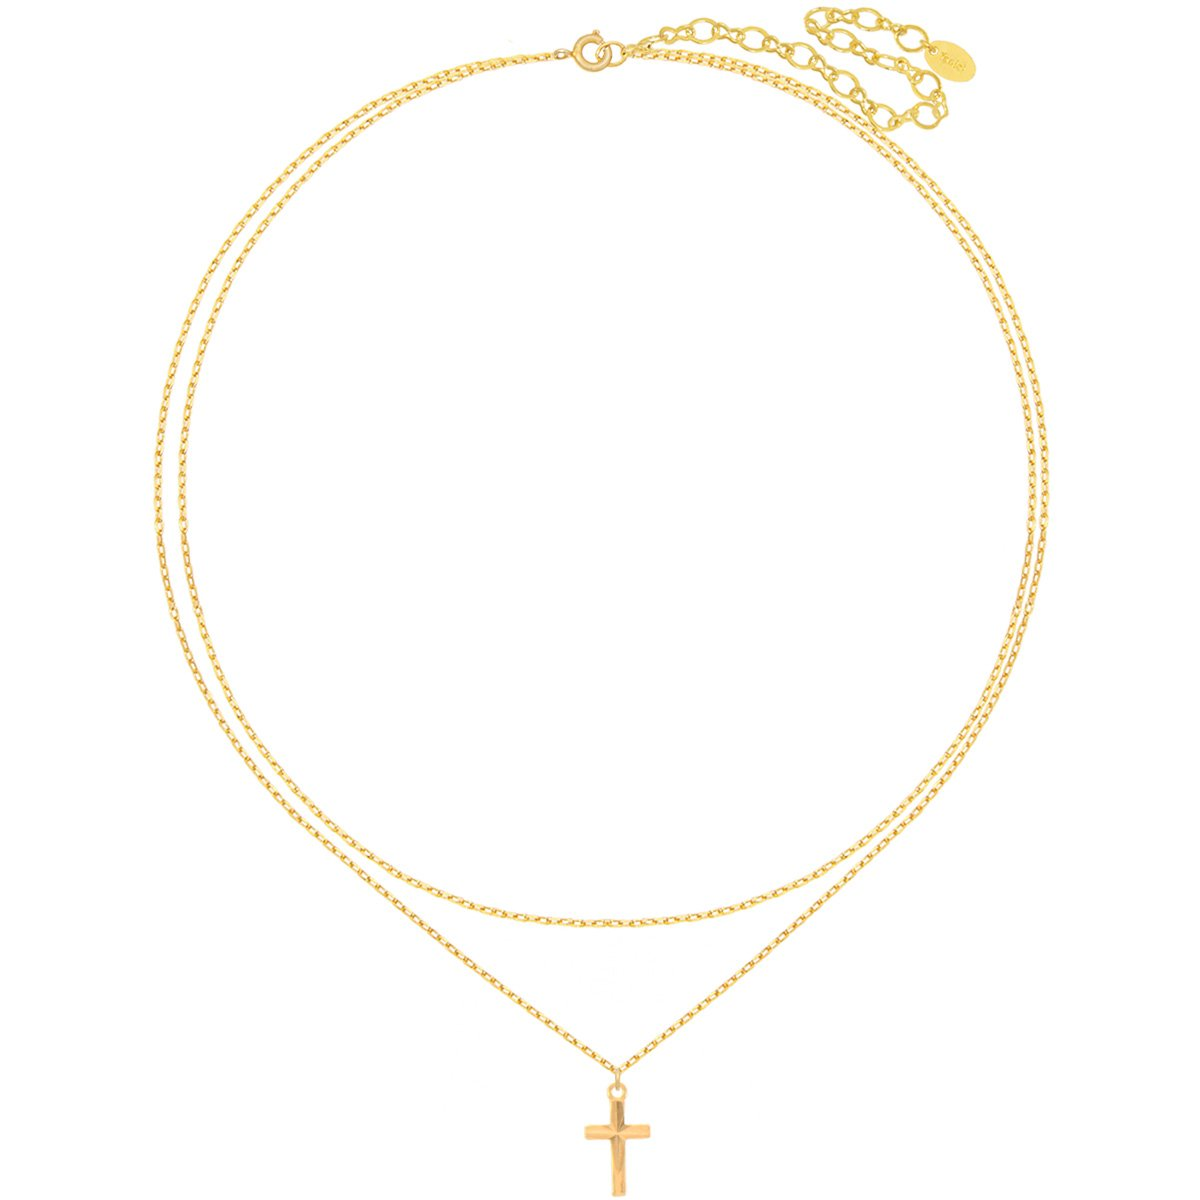 12 Cross Size 9x15 mm 13 with 4 extender Choker Necklace 18K Gold Plated Cross Double Choker.Length